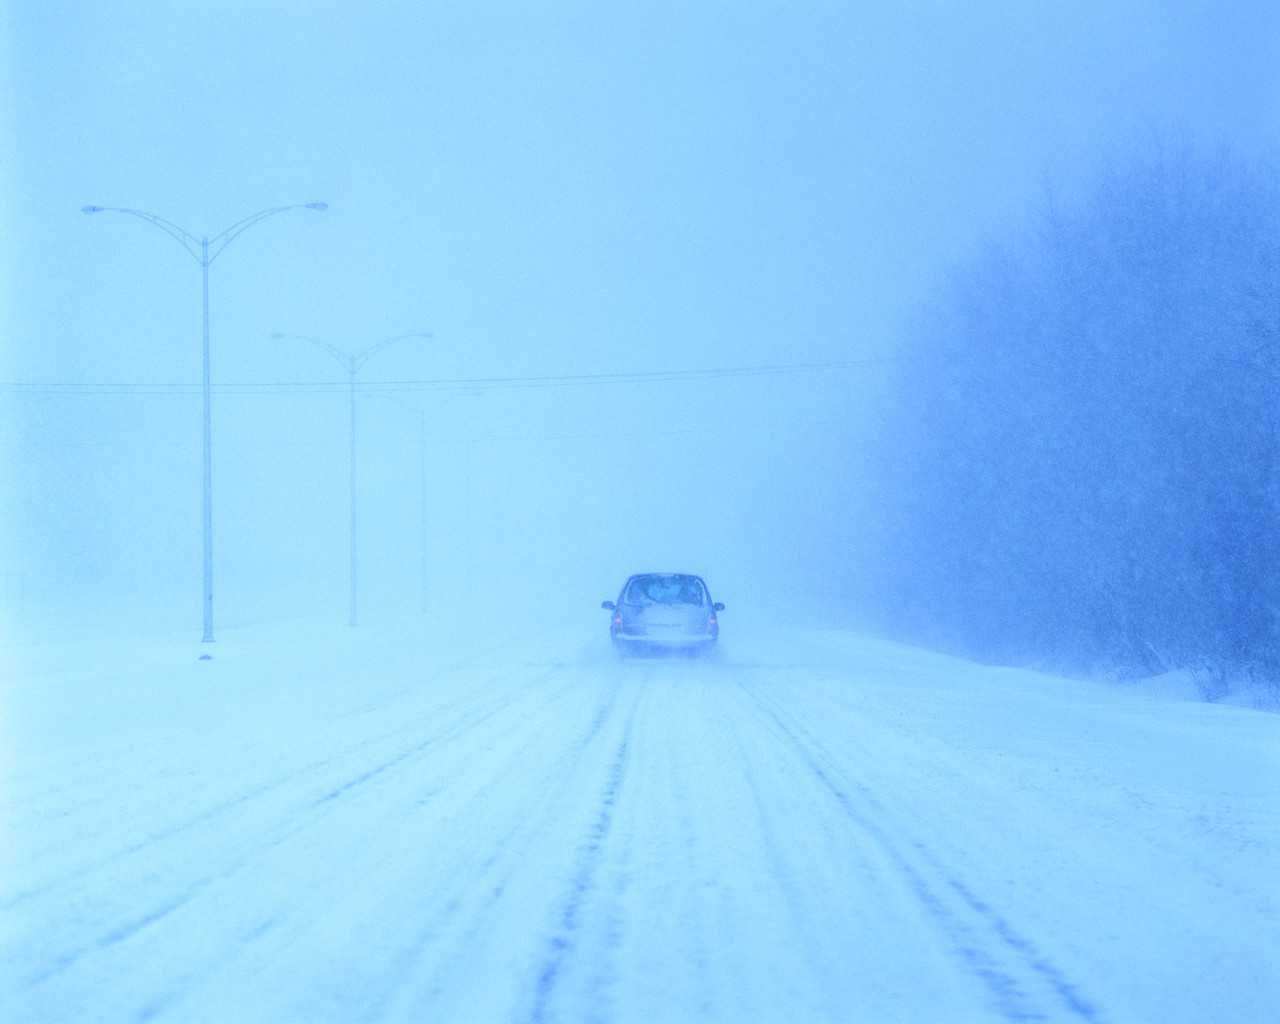 Car in blizzard conditions.